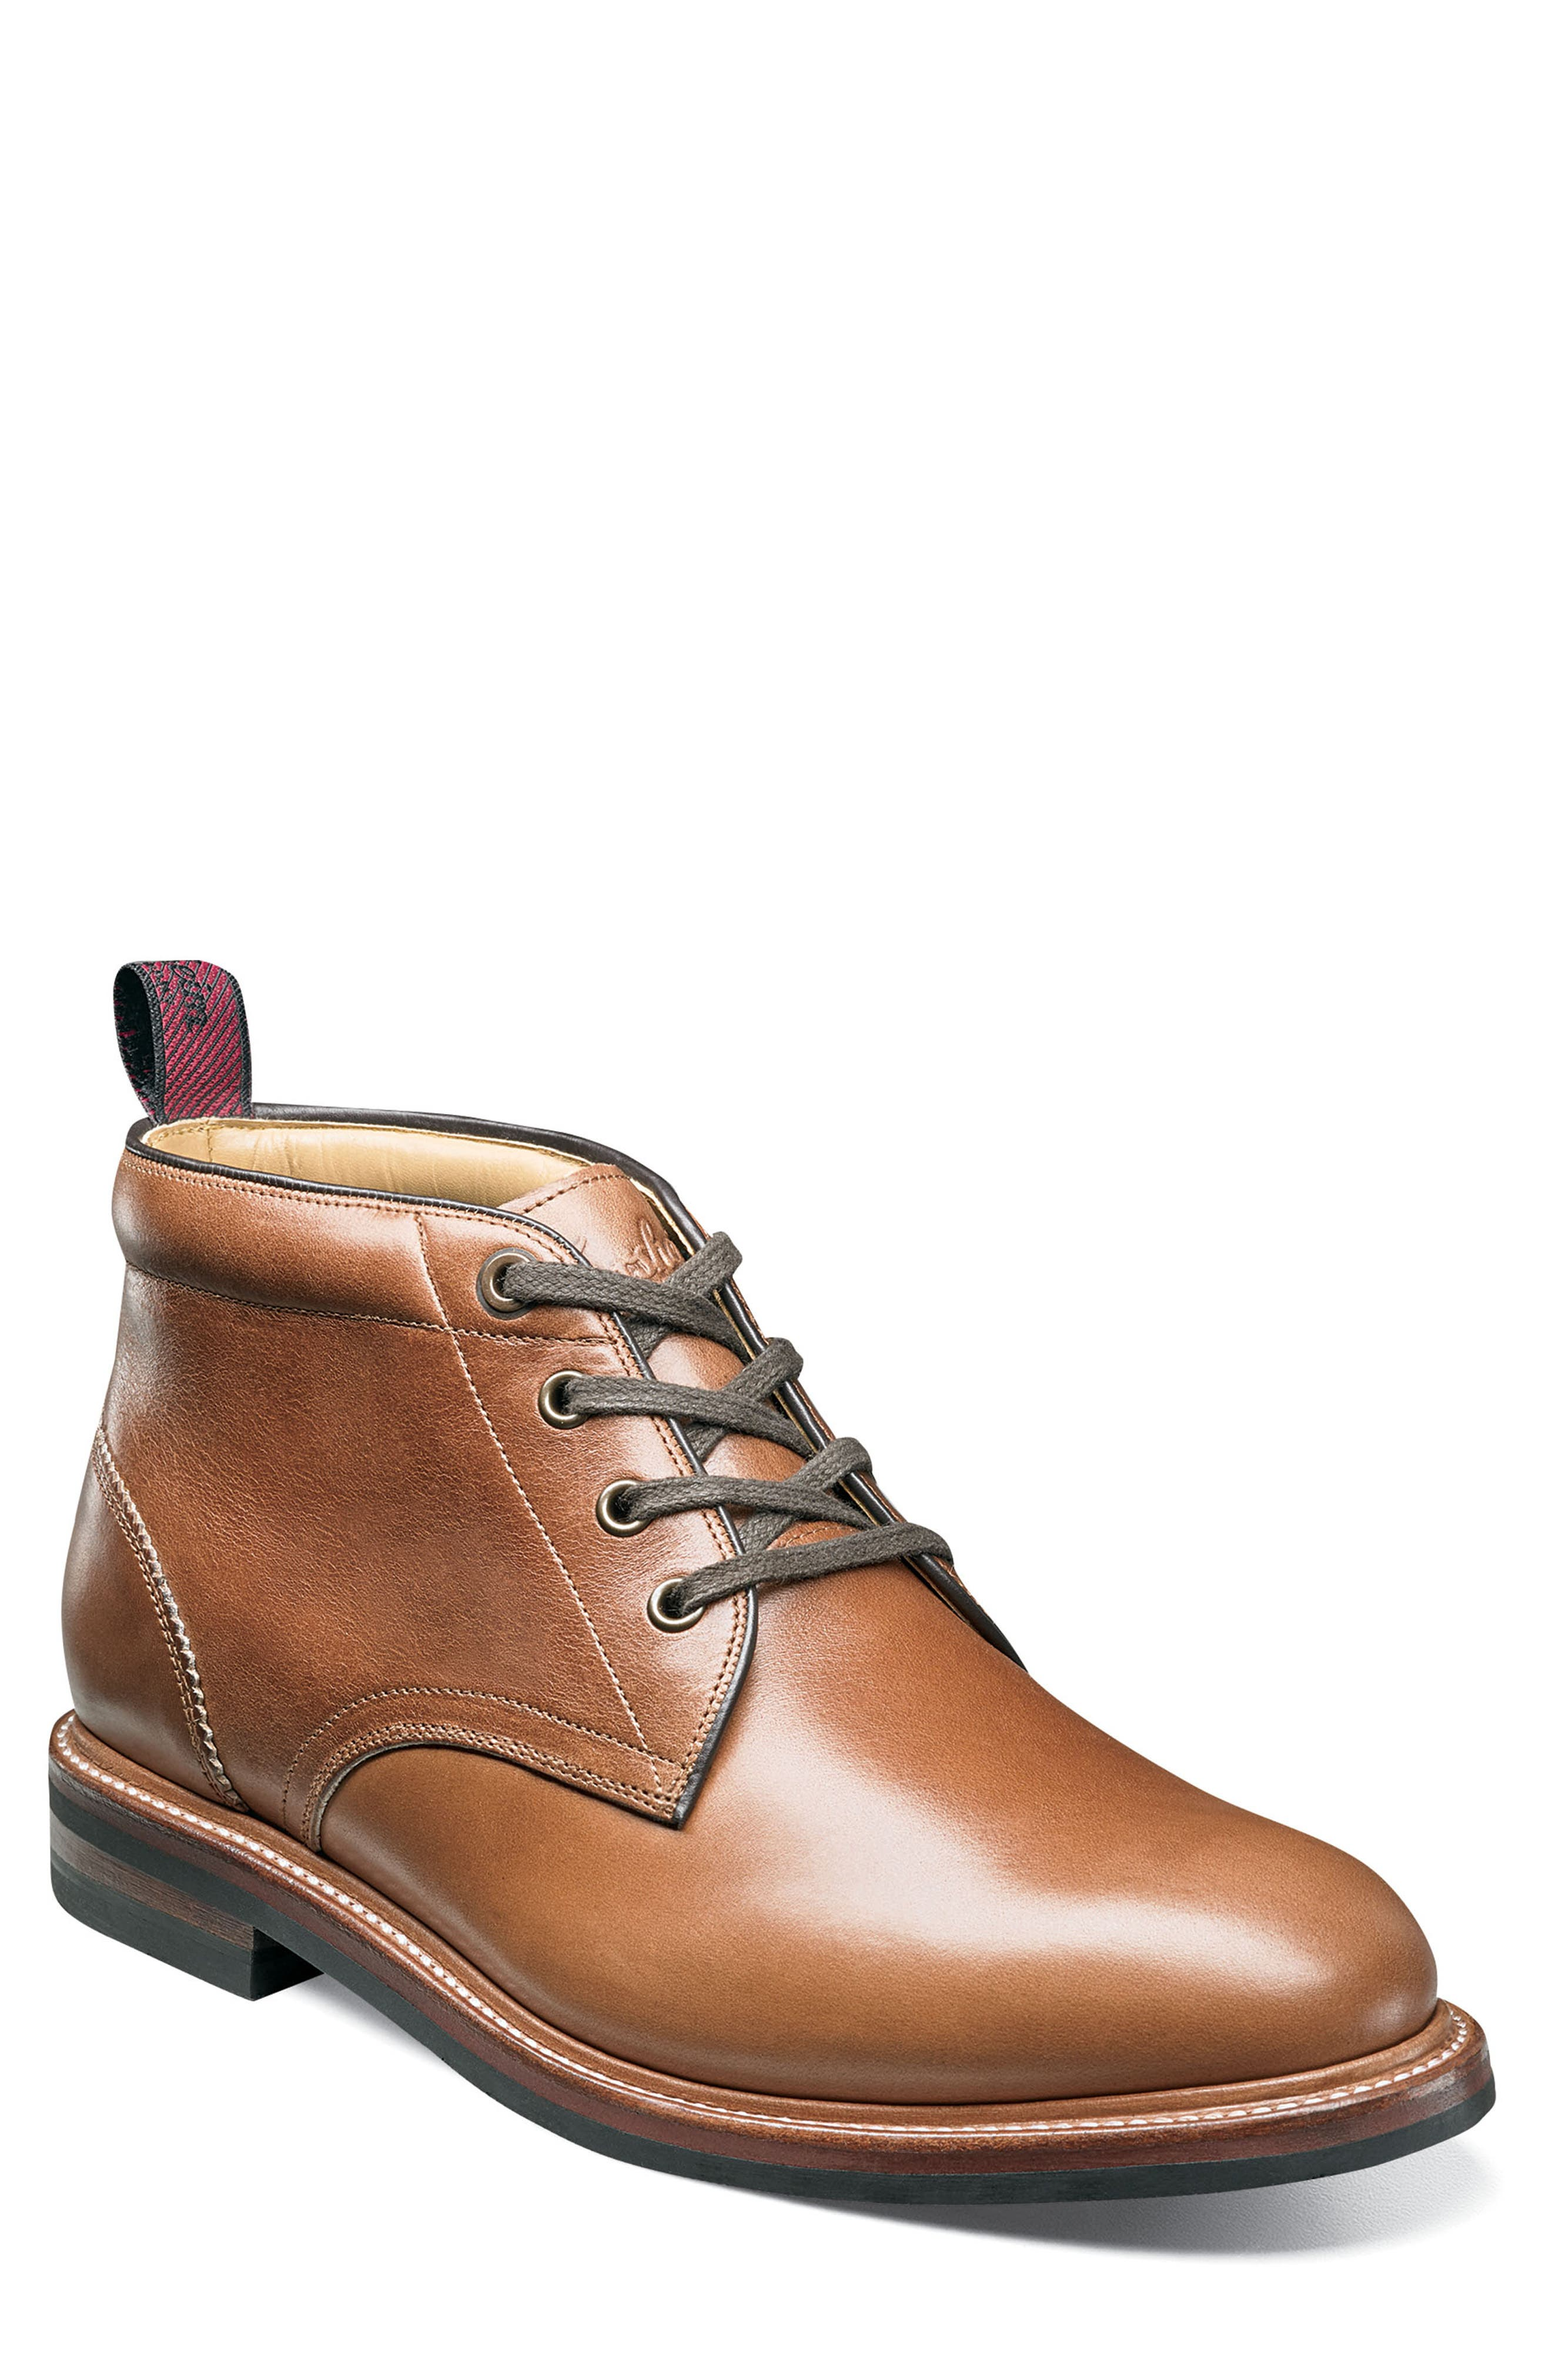 Florsheim Foundry Leather Boot, Brown